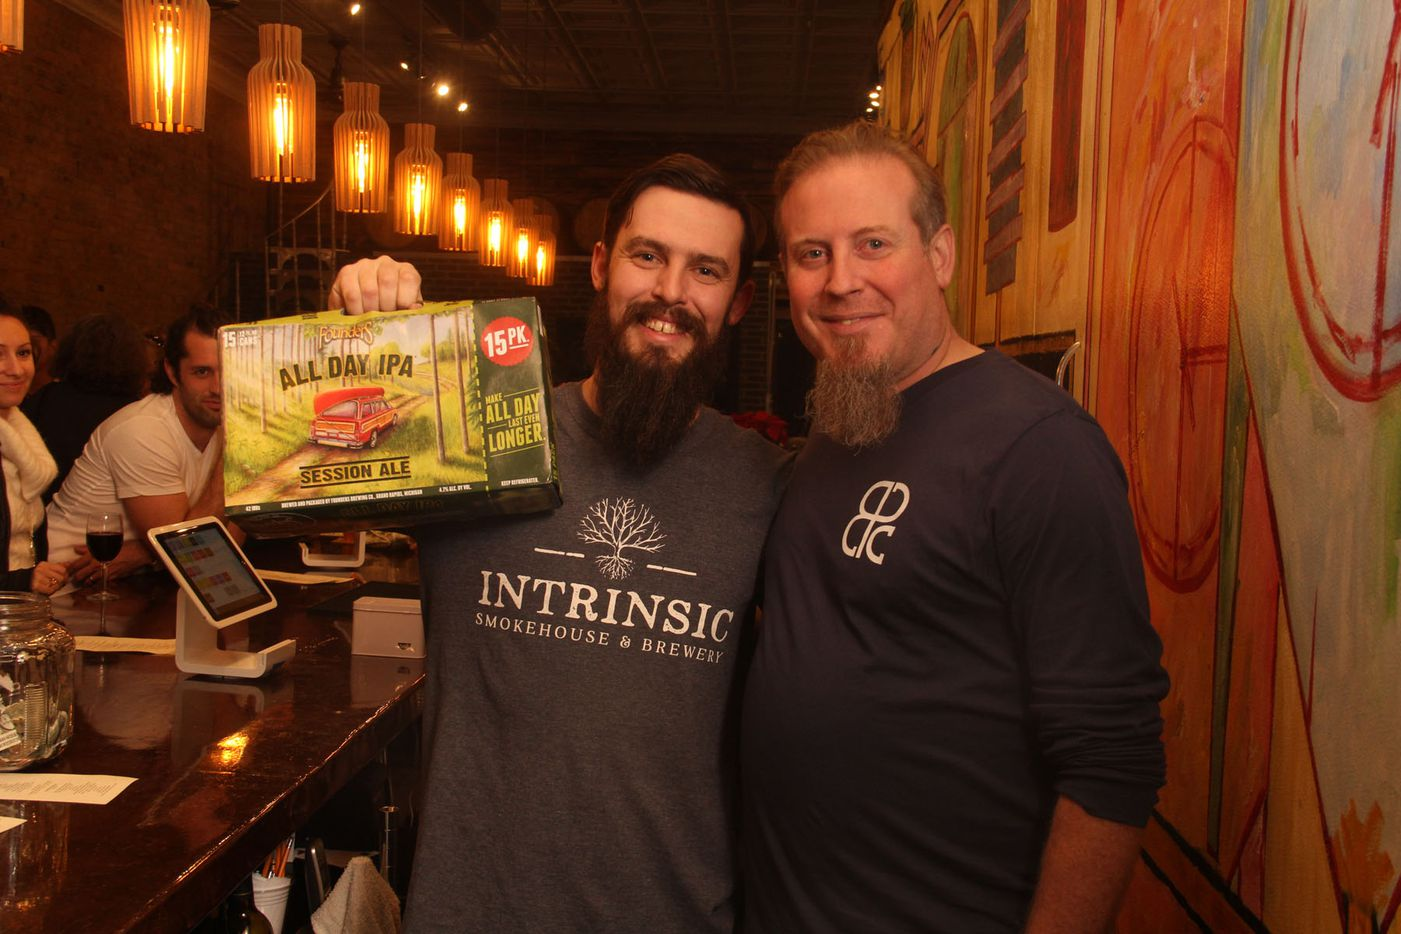 Beer rep. Tait Lifto dropping off a grand opening present to Intrinsic Smokehouse and Brewery owner Cary Hodson.